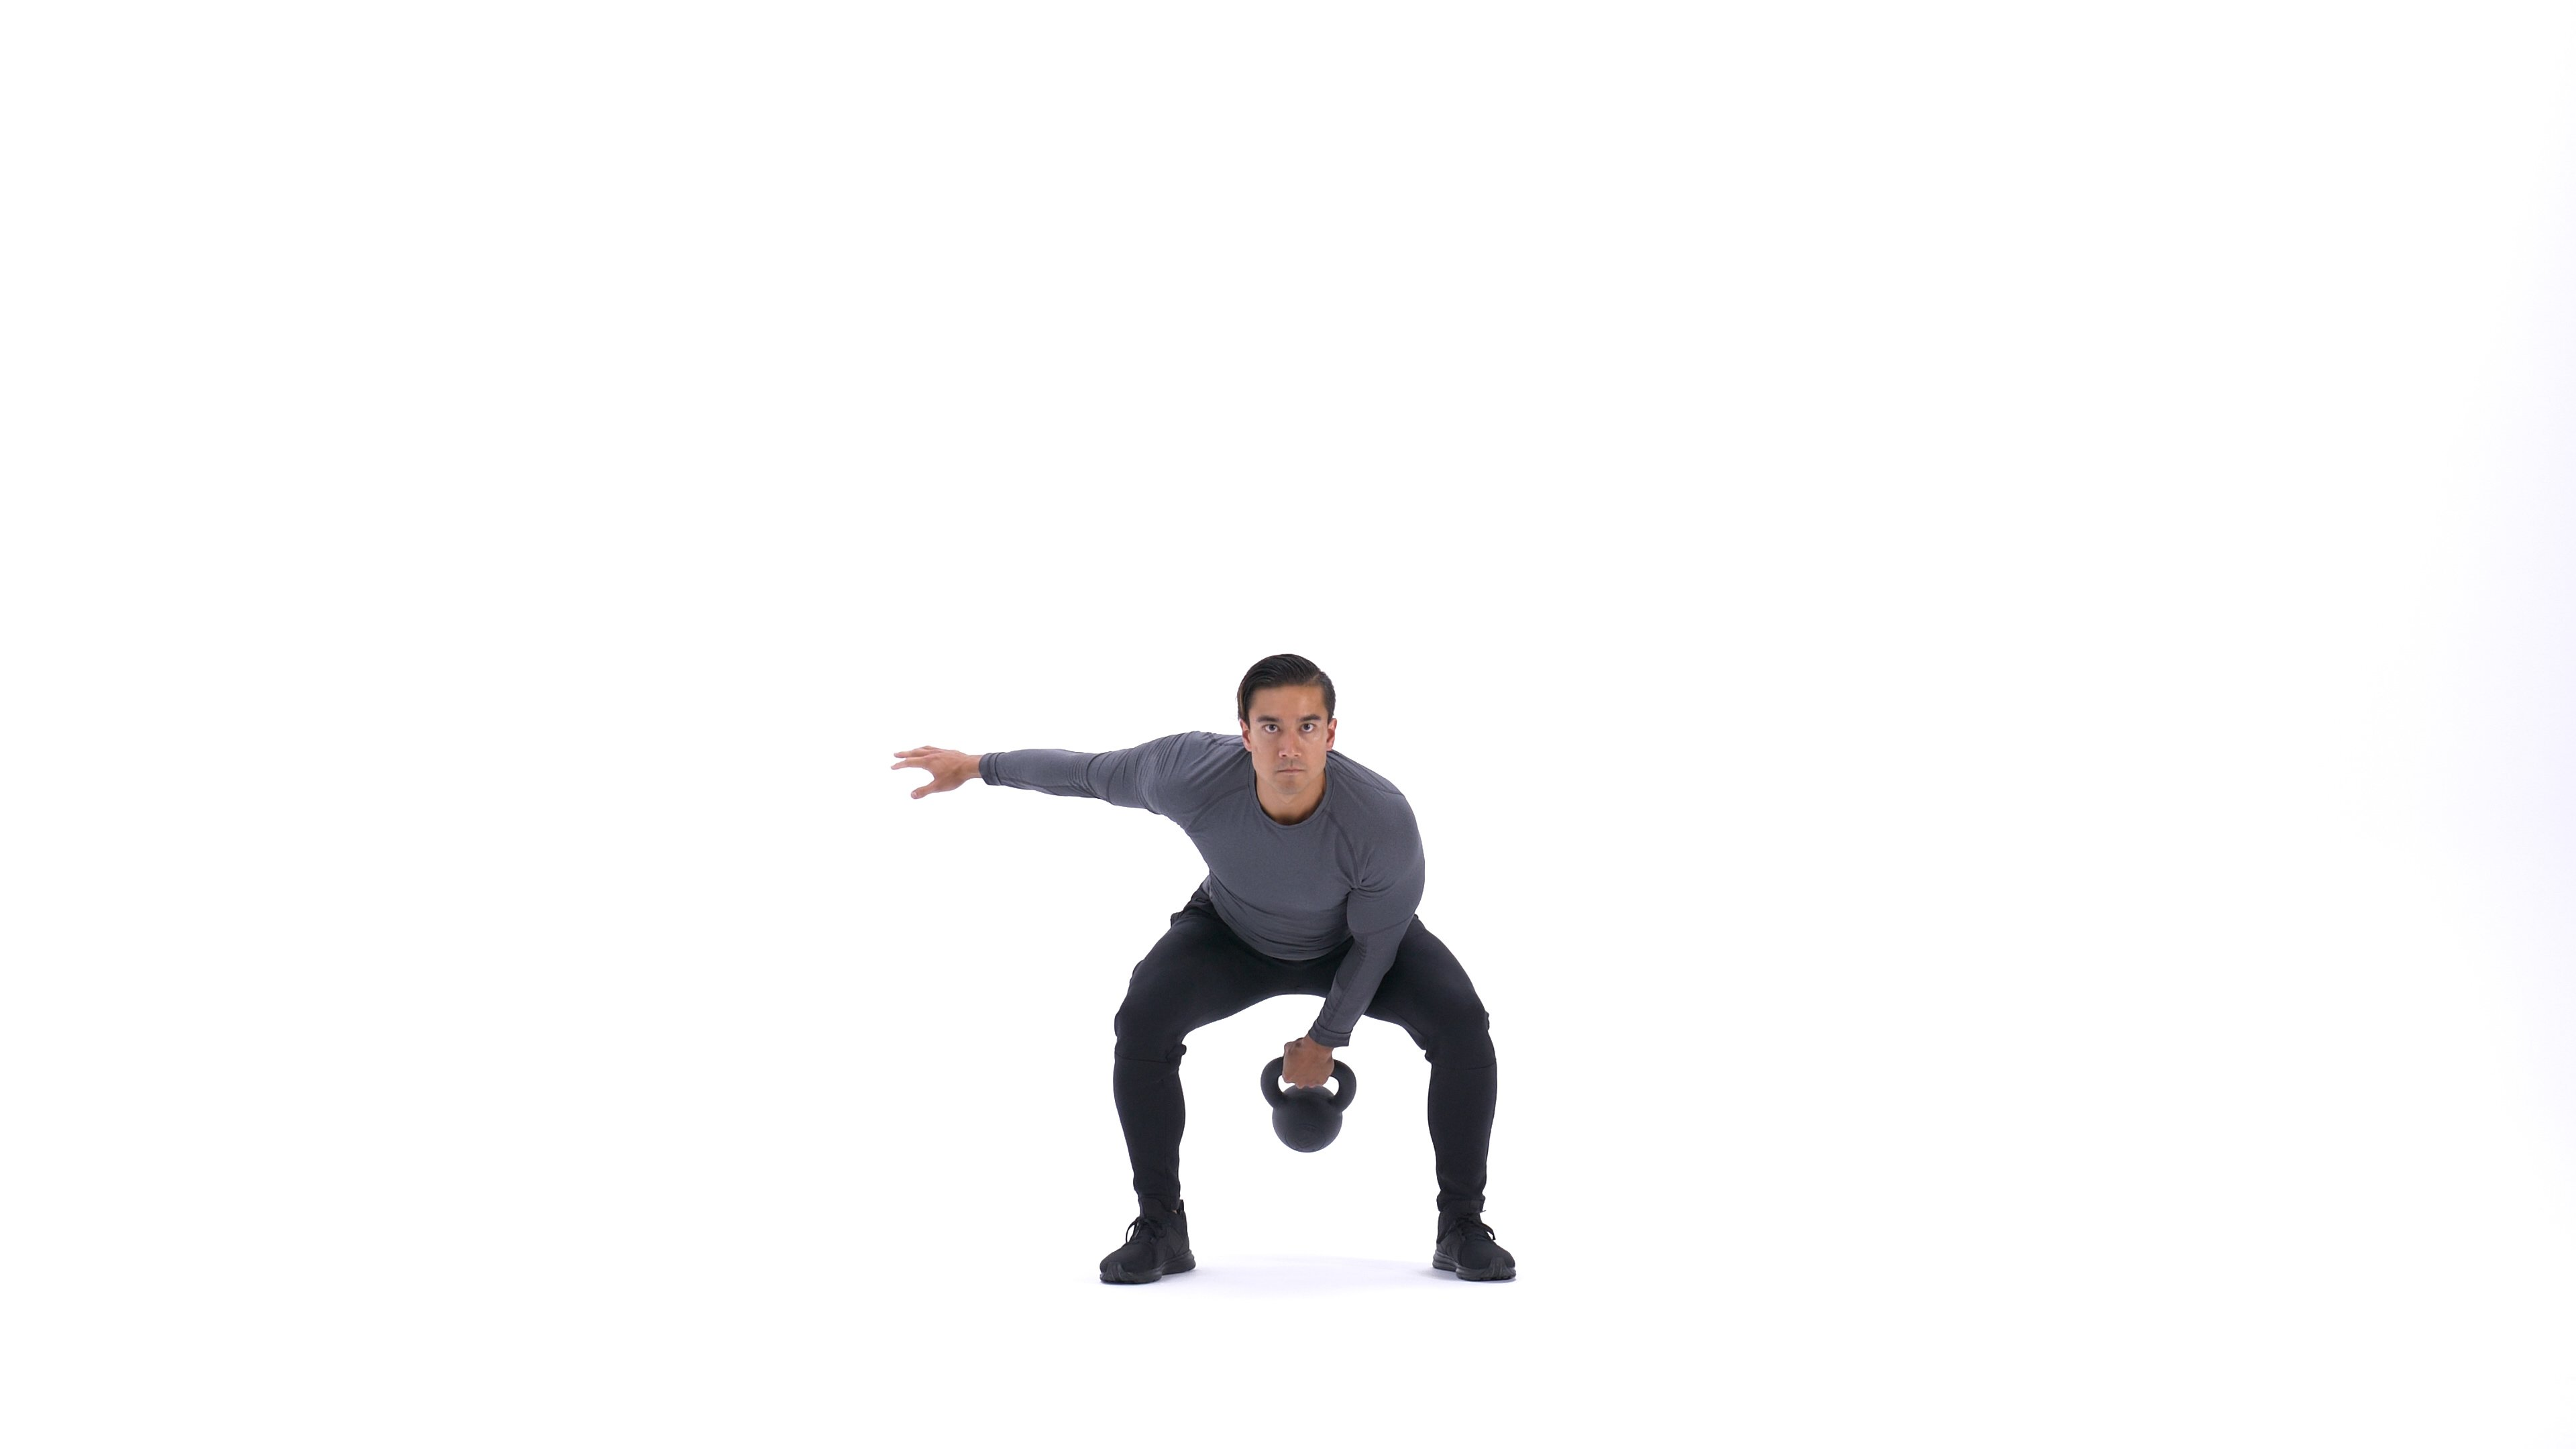 Single-arm kettlebell swing image